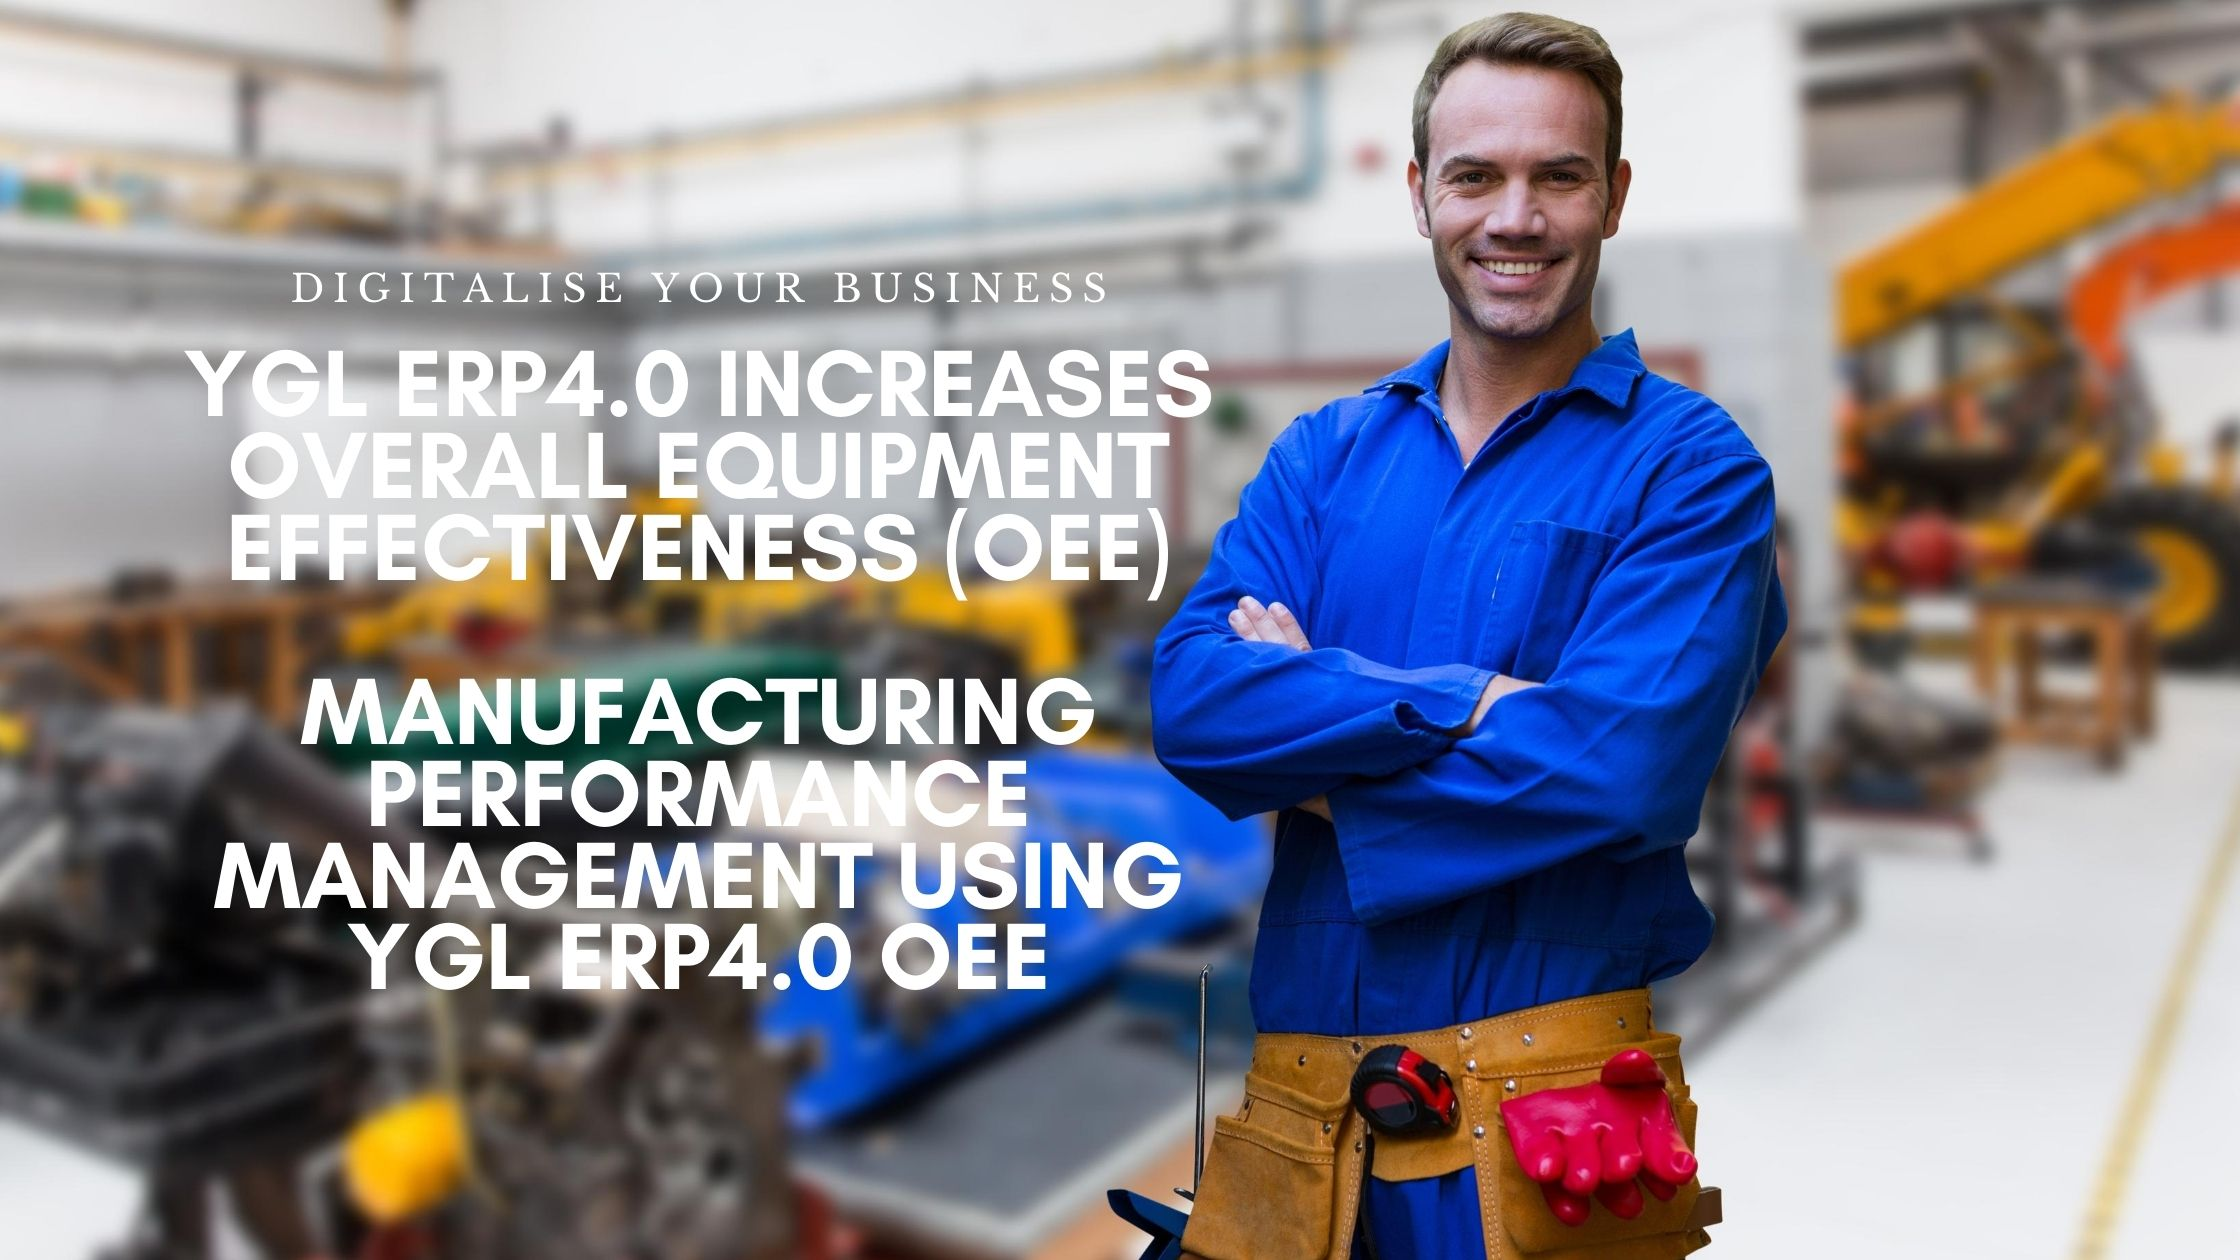 Ygl ERP4.0 increases Overall Equipment Effectiveness | Manufacturing Performance Management using YGL ERP4.0 OEE